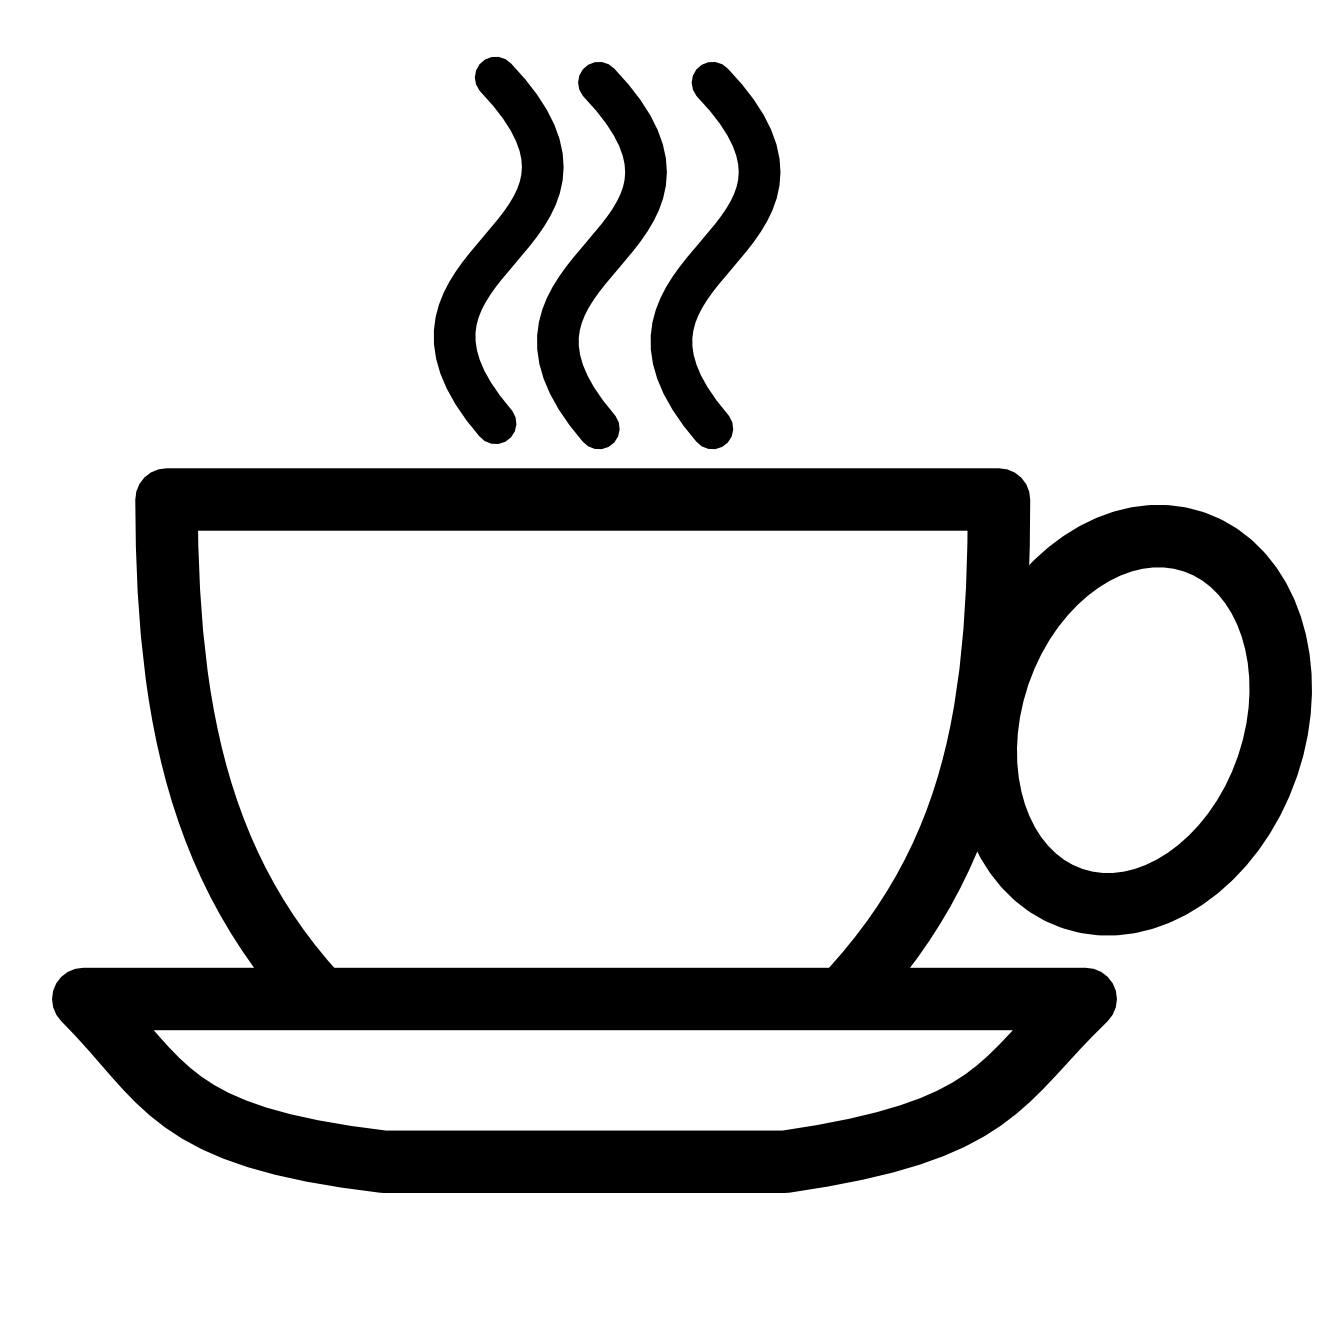 Tea clipart black and white - Hot Tea PNG Black And White